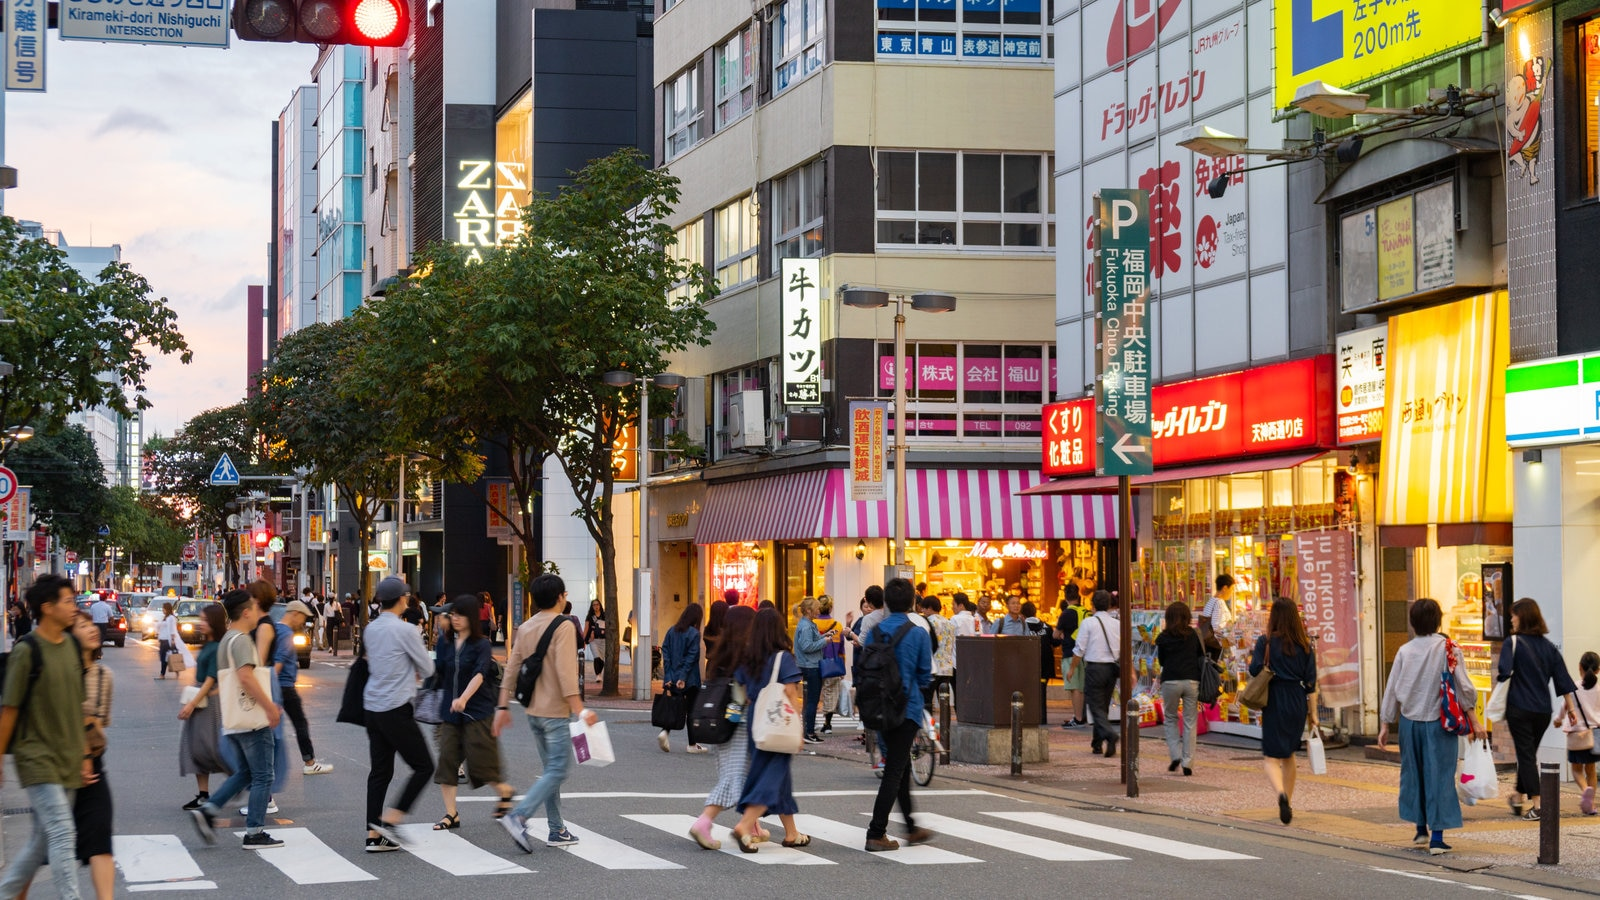 Tenjin featuring street scenes and a city